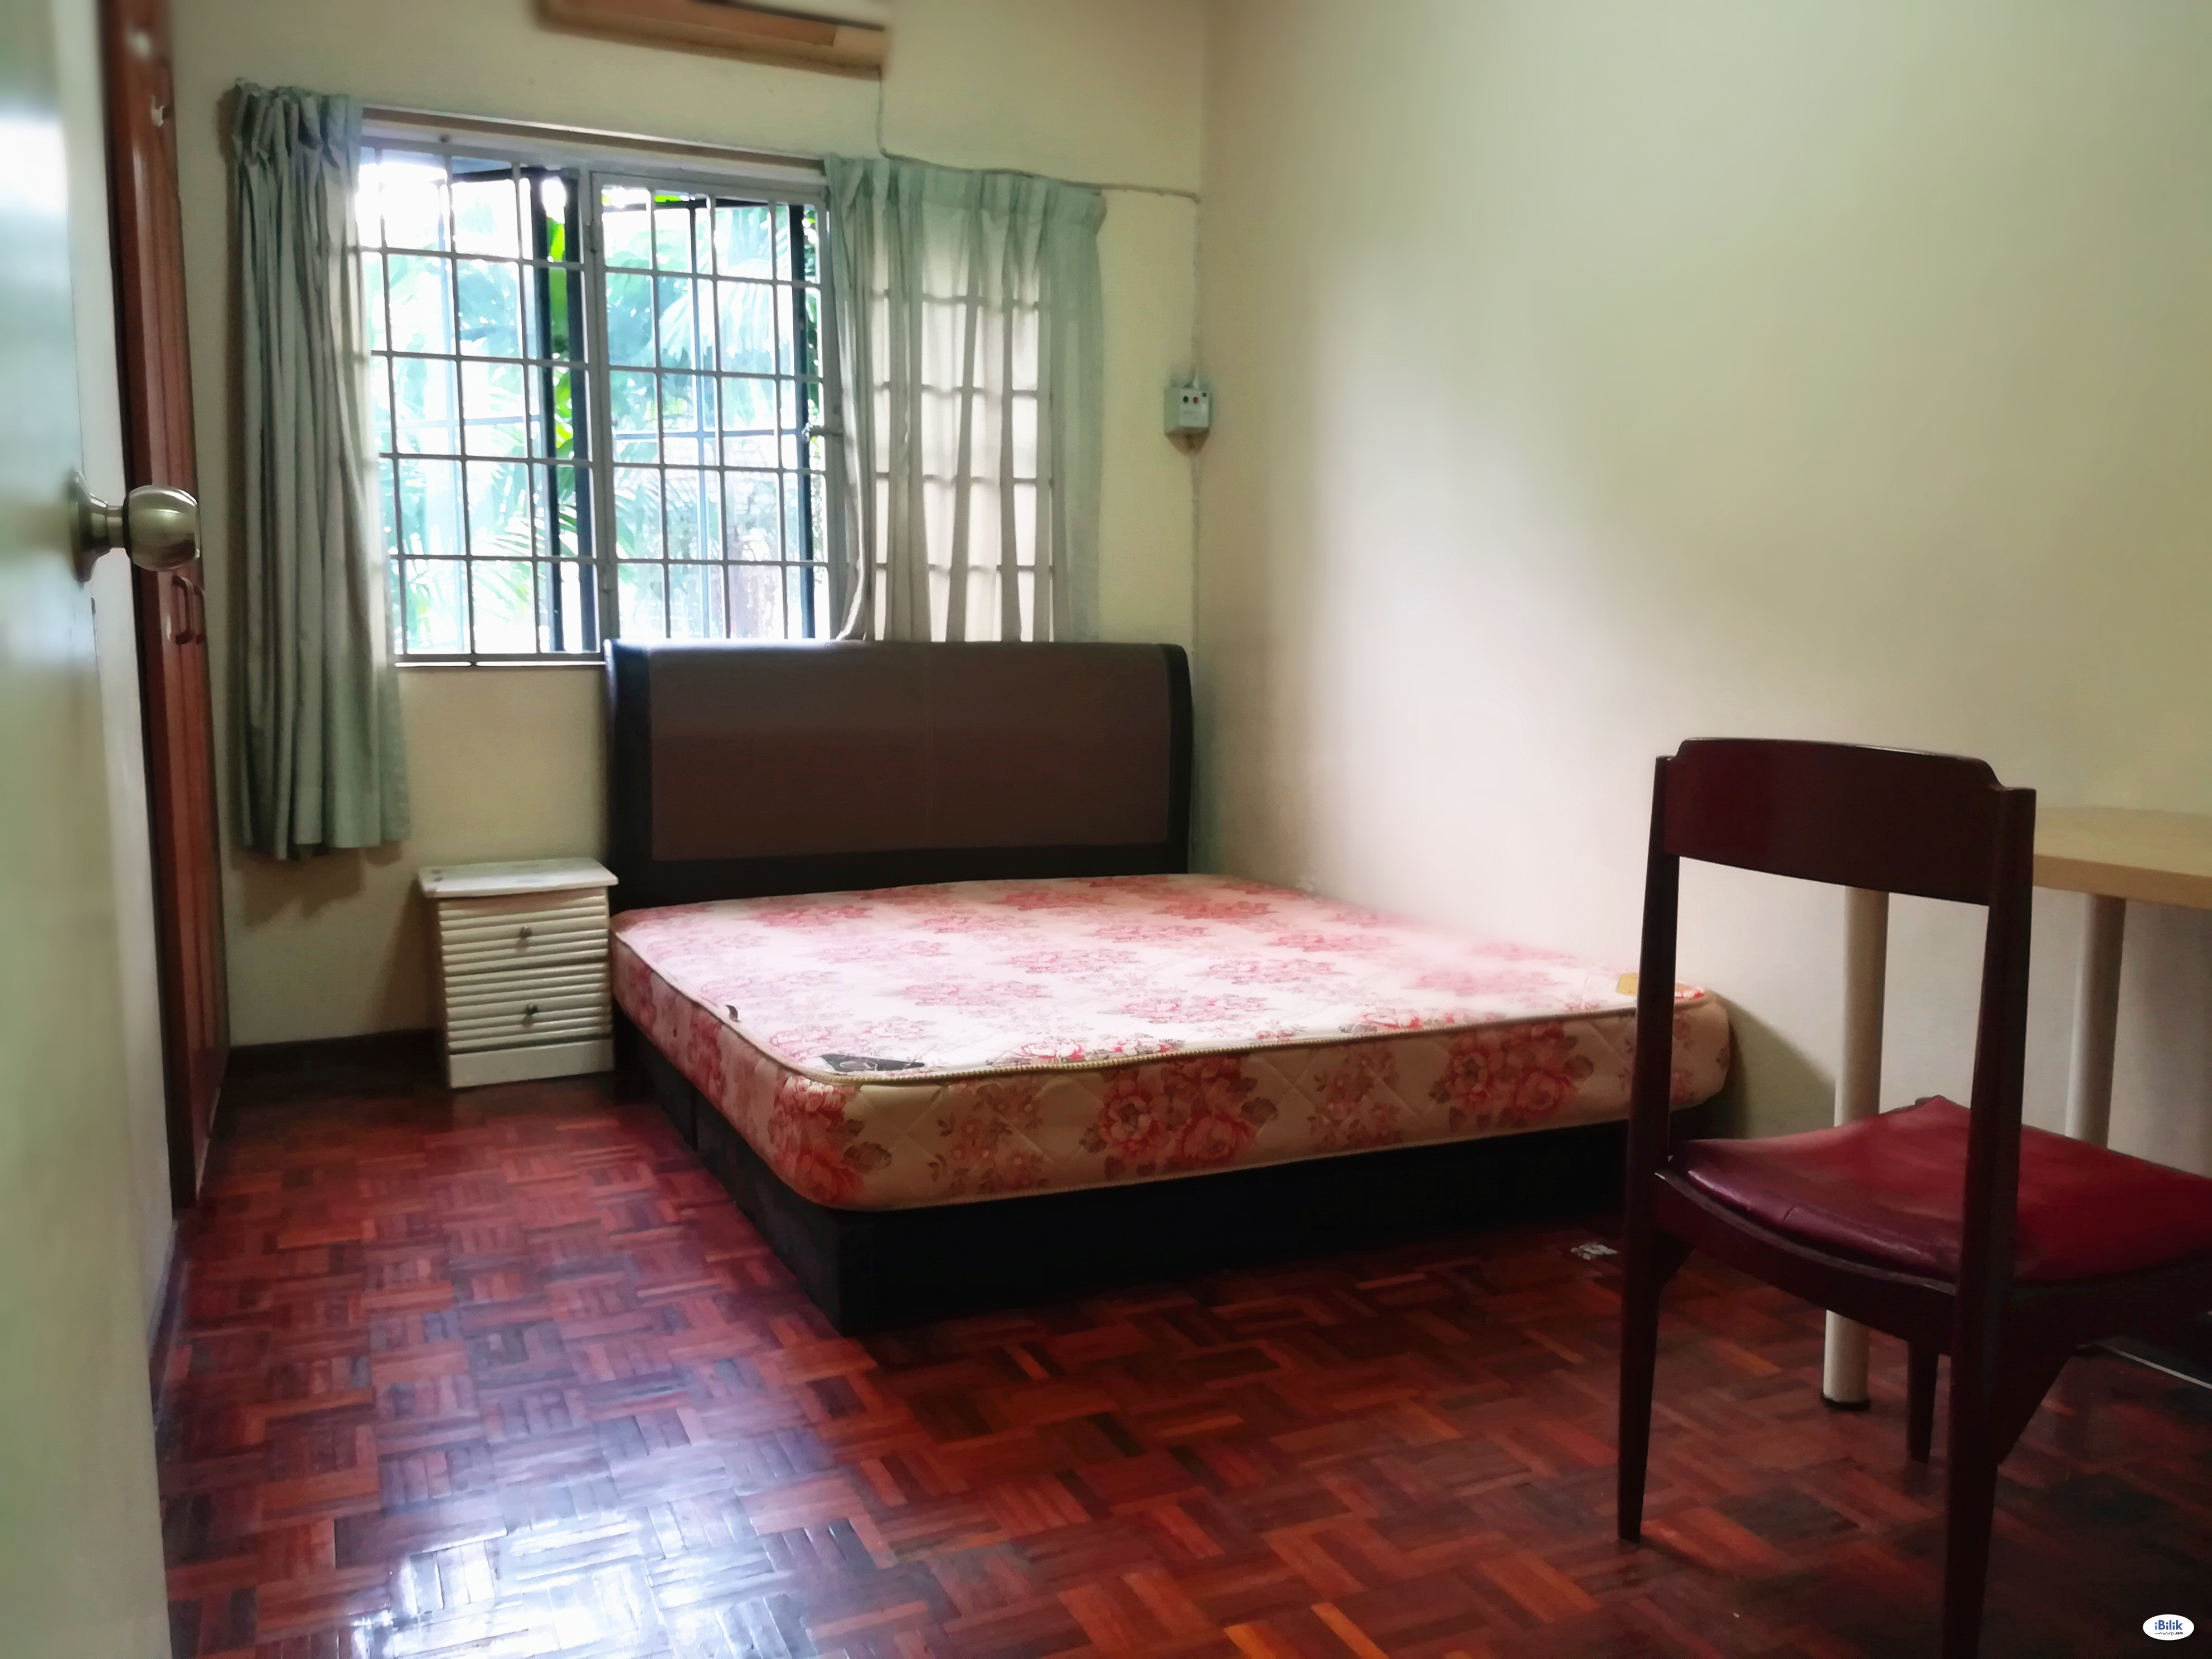 MOVE IN NOW!!Middle Room at Tiara damansara, Section 17, Petaling Jaya